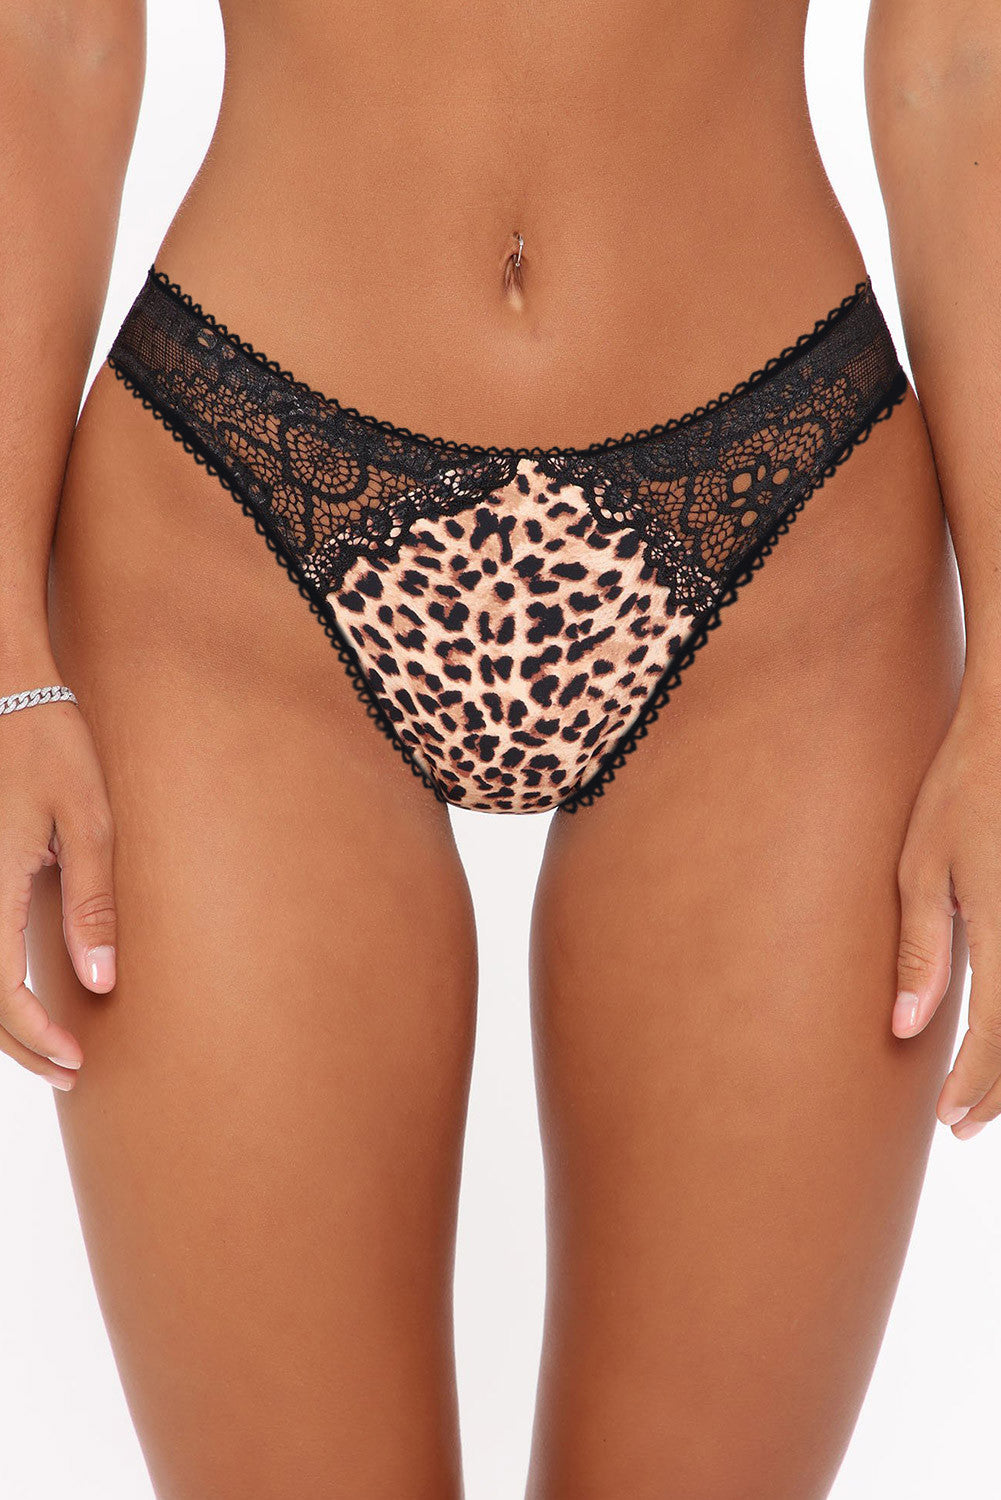 Animal Leopard Lace Patchwork Hollow Out Wild Panty